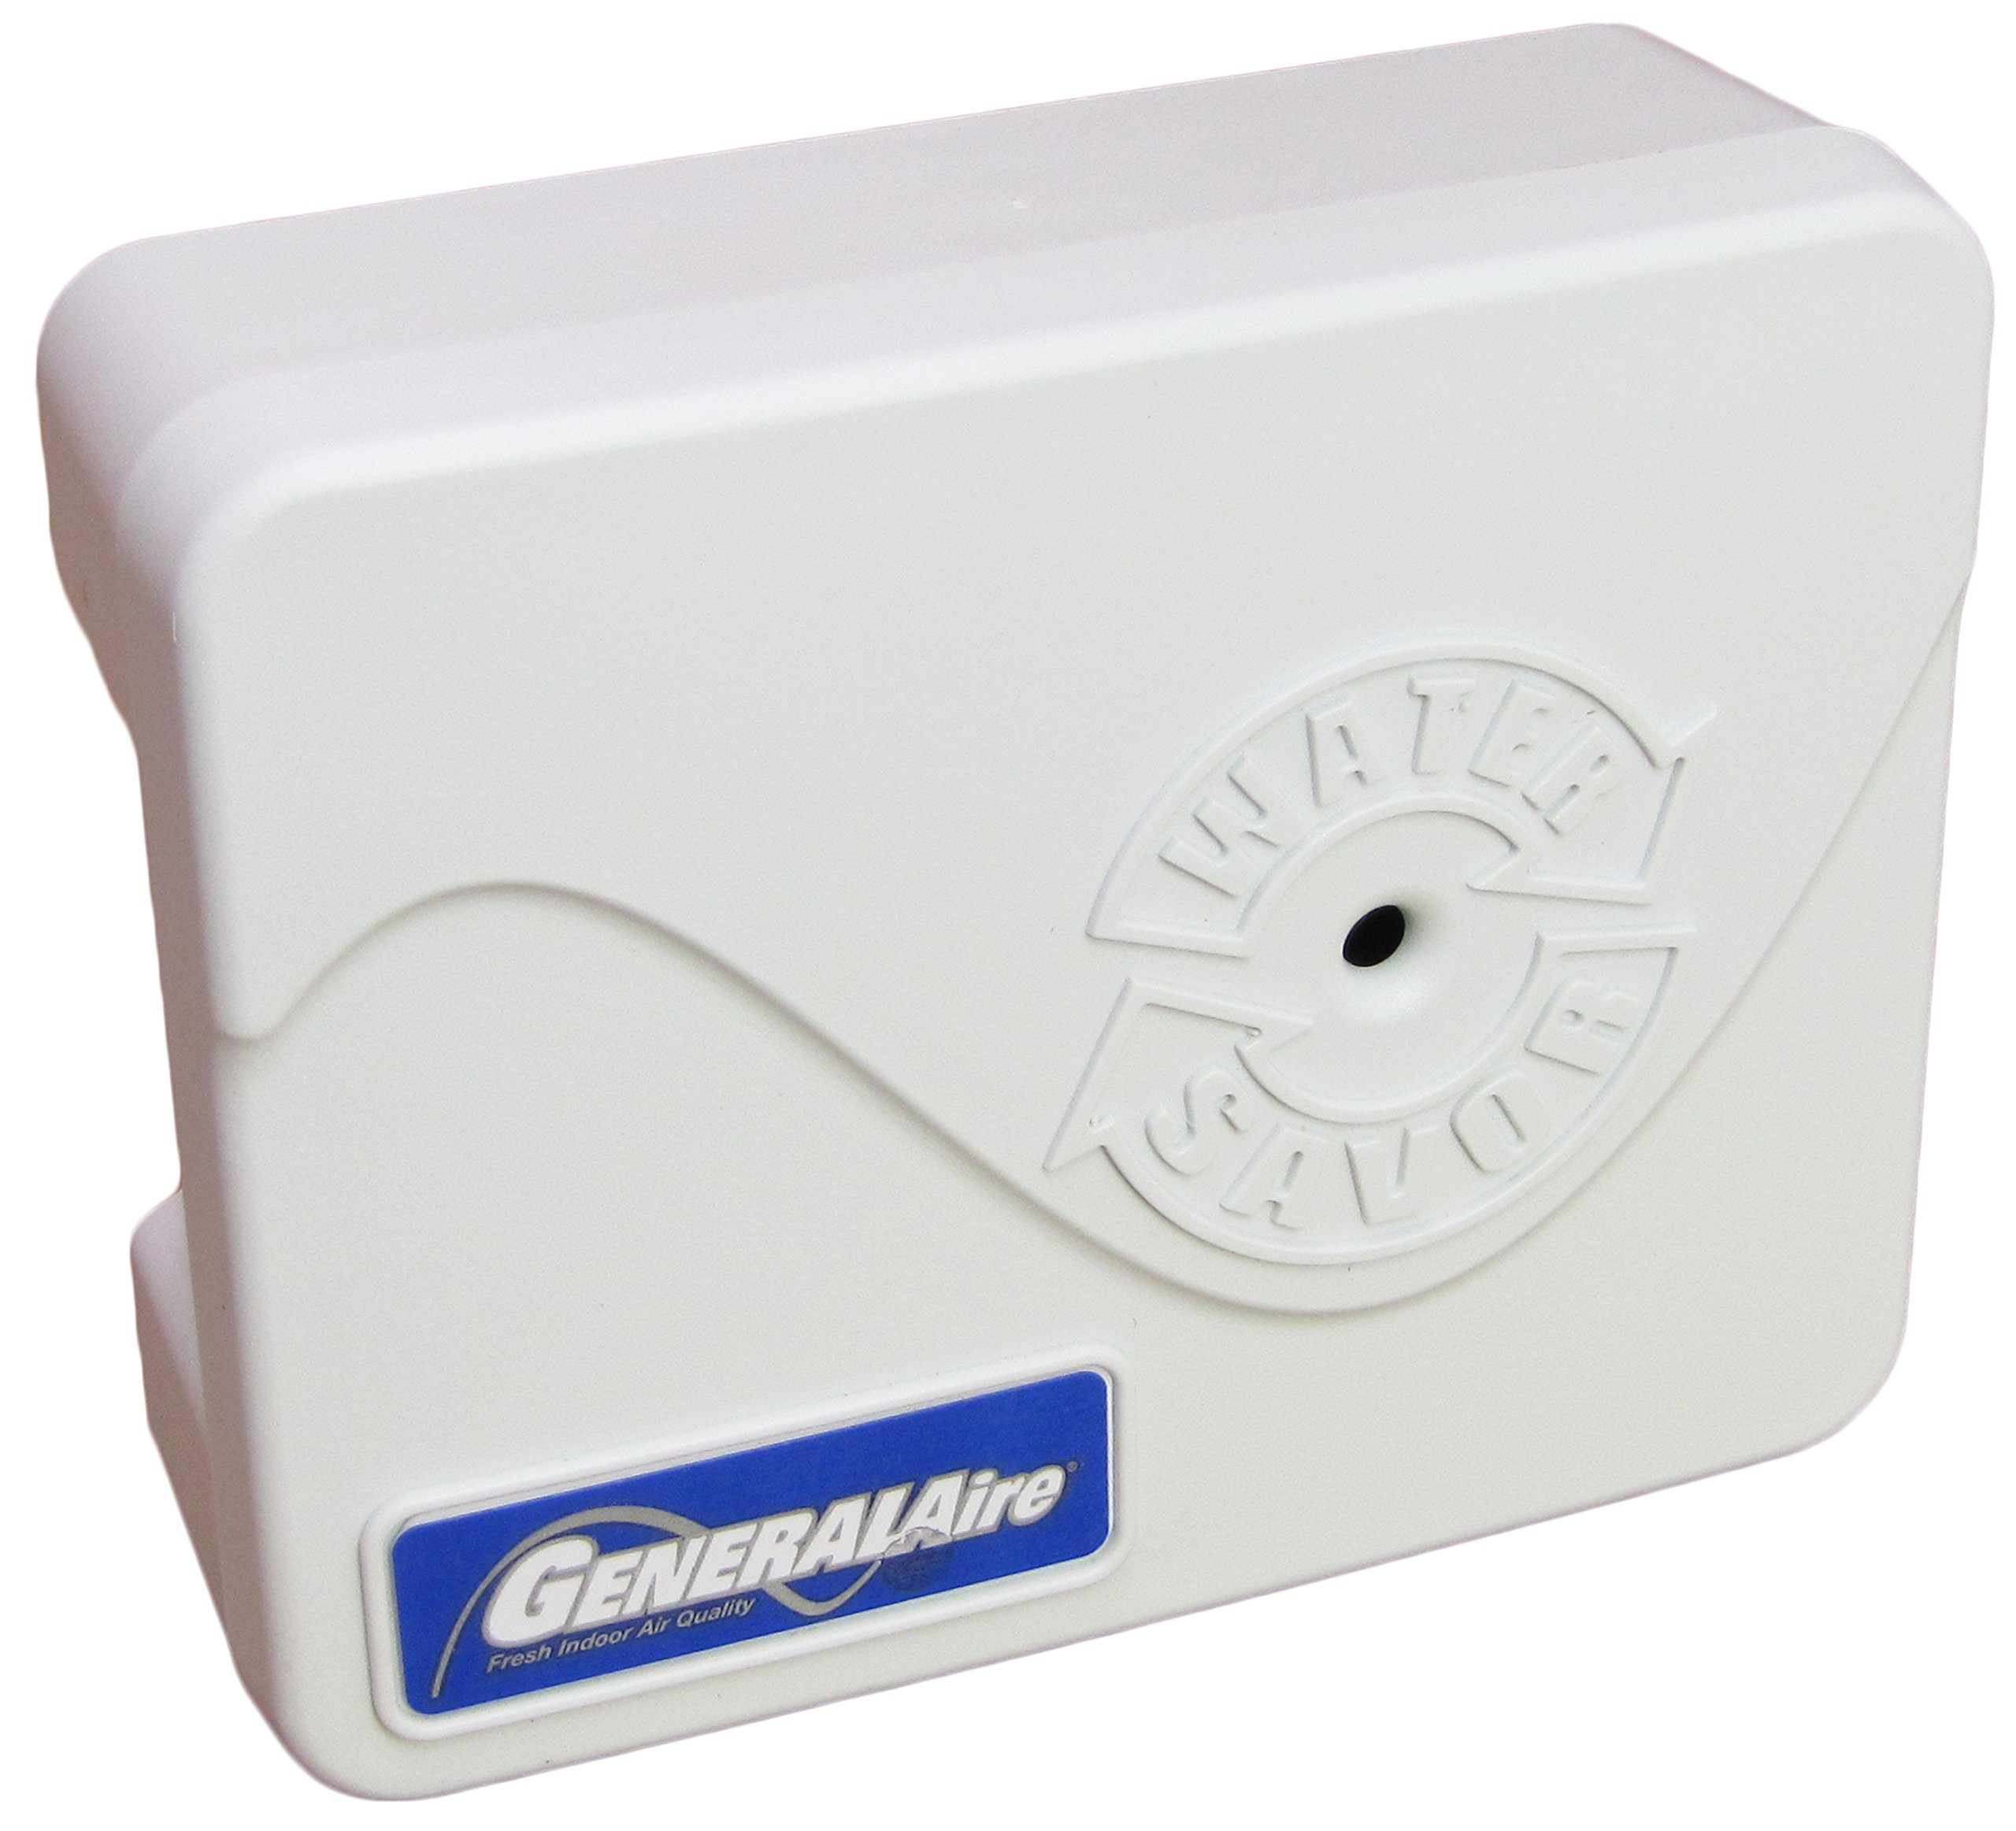 Humidifier Water Saver Controller - Cut Water Waste from Whole House Flow Through Humidifier in Half by GeneralAire